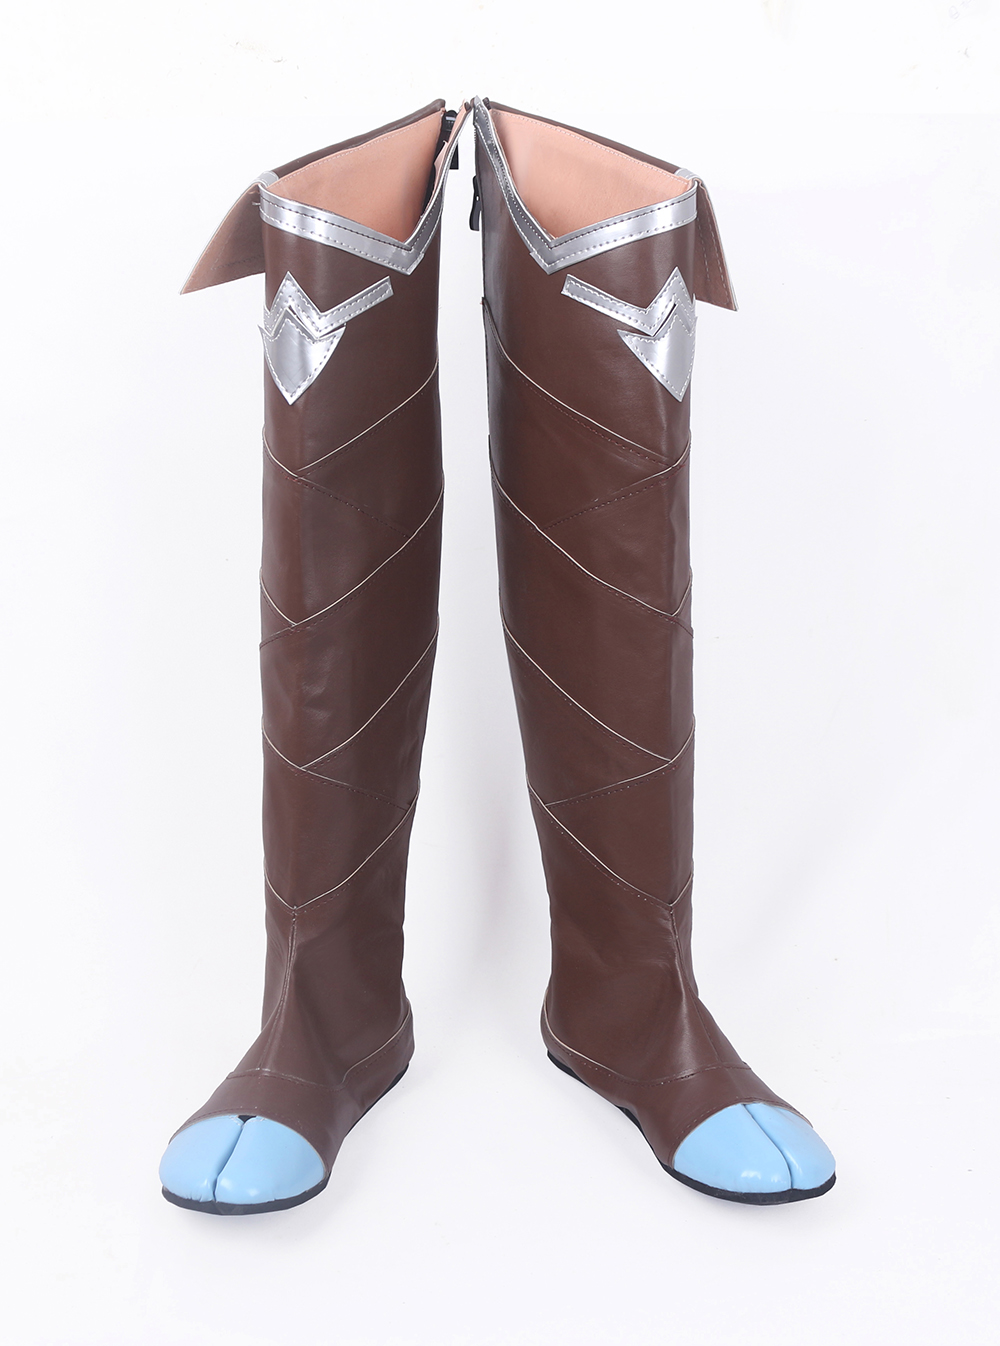 LOL Xayah The Rebel Cosplay Long Boots Shoes (2)